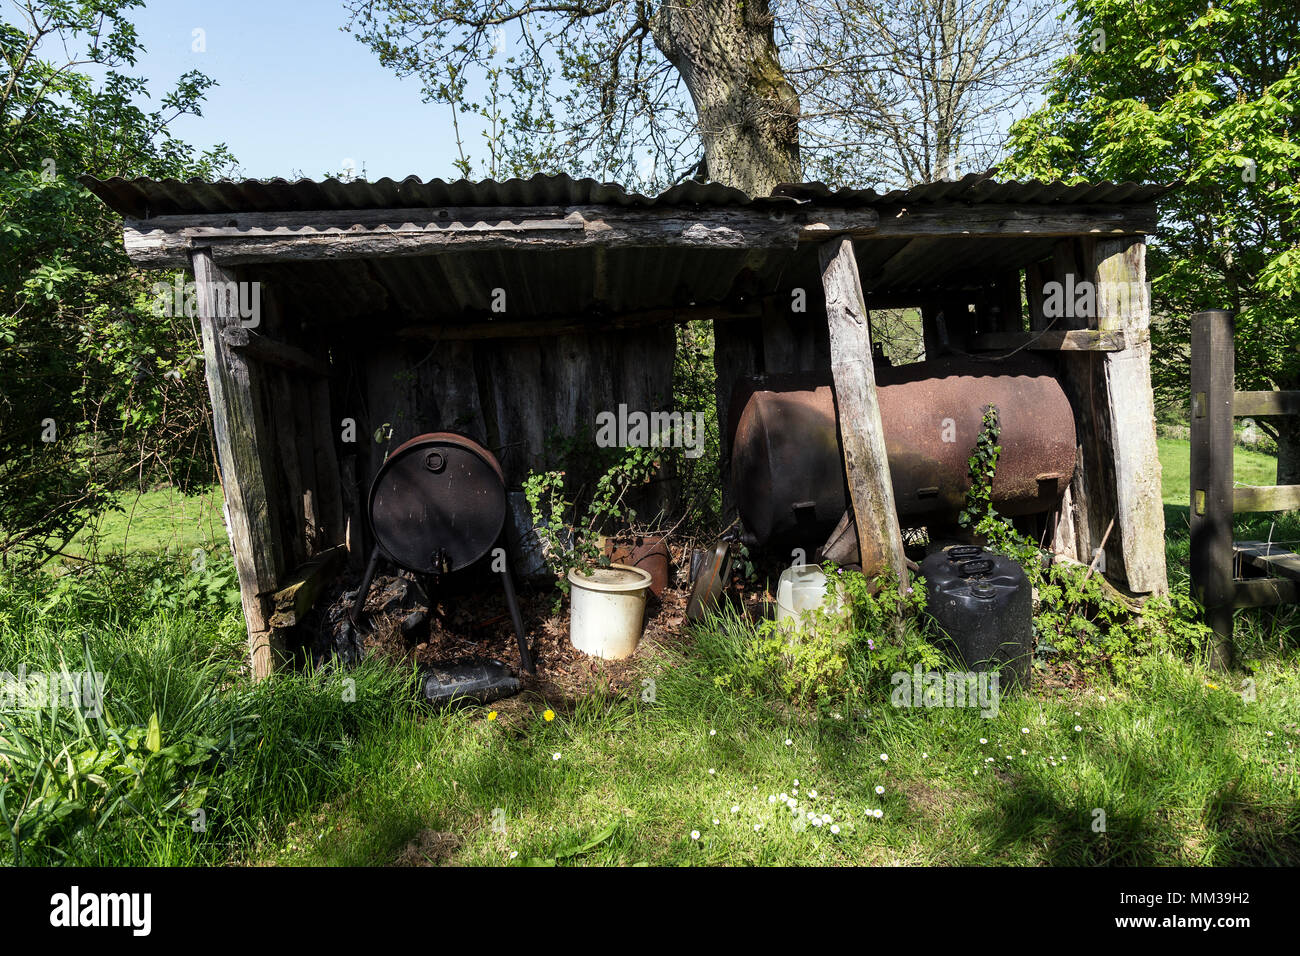 rural oil store,A container for holding or storing oil.,lubricant, lubrication, grease,power source, heat source, combustible, propellant,joist, purli - Stock Image